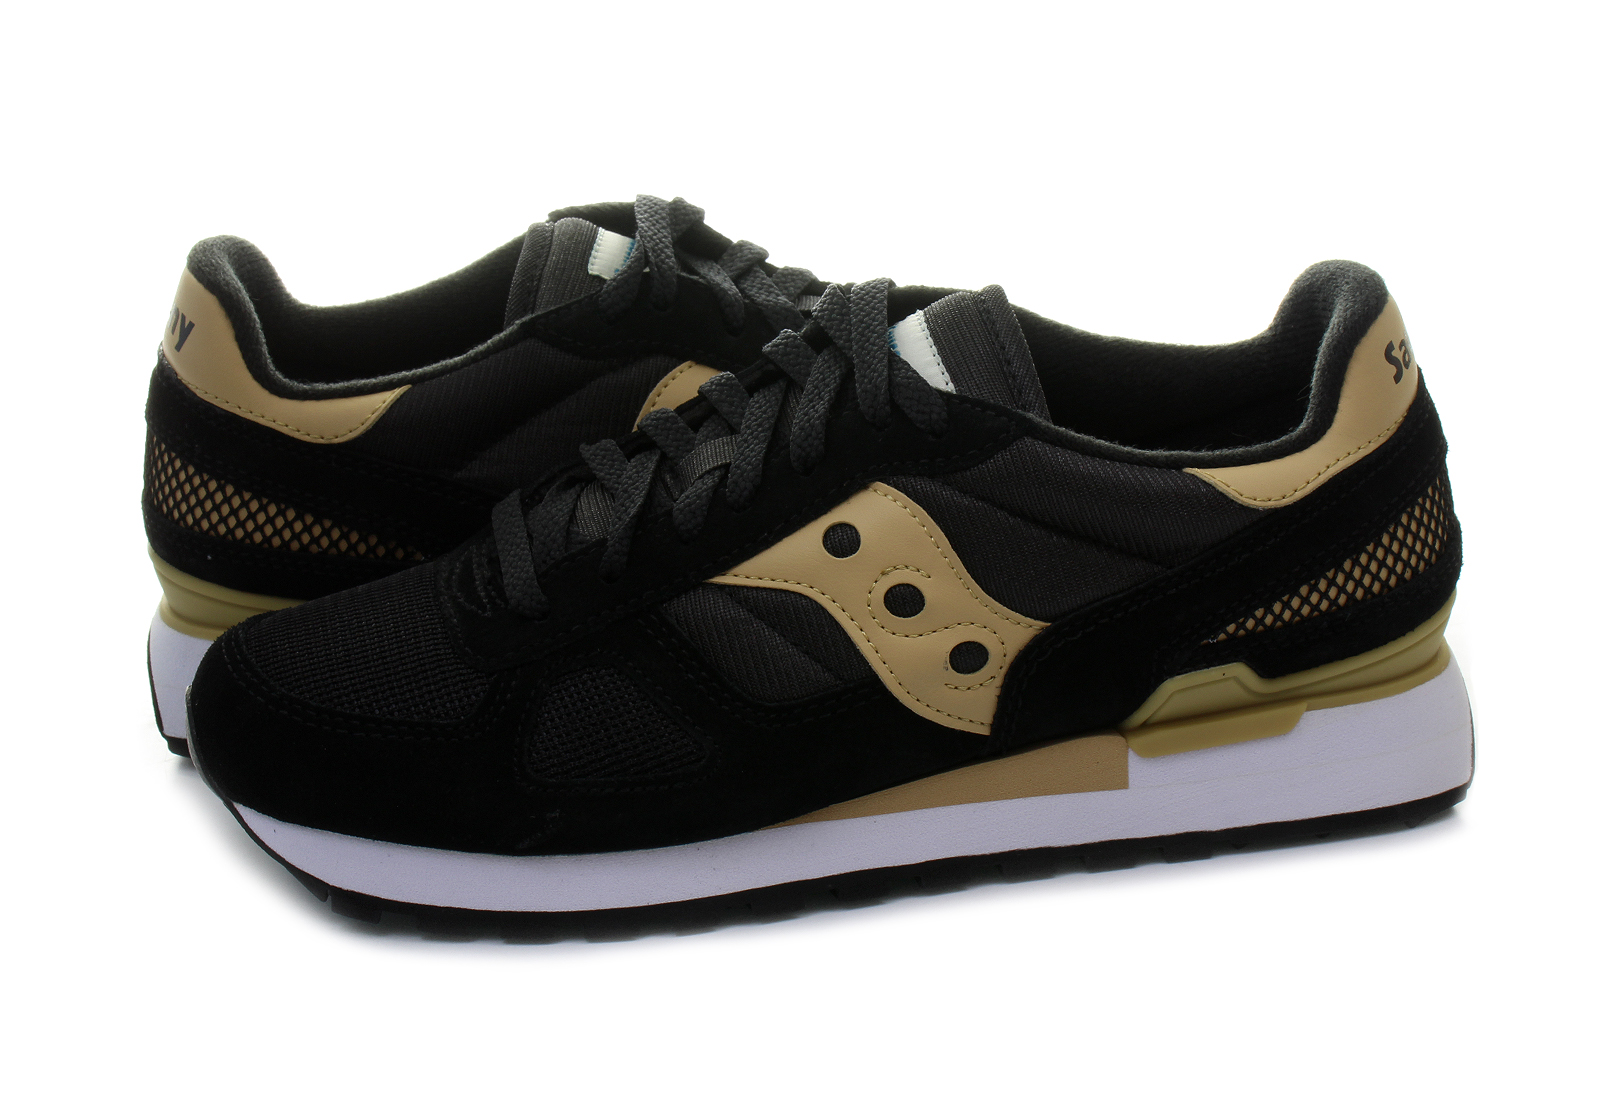 Shop for saucony ride 8 womens online at Target. Free shipping & returns and save 5% every day with your Target REDcard.